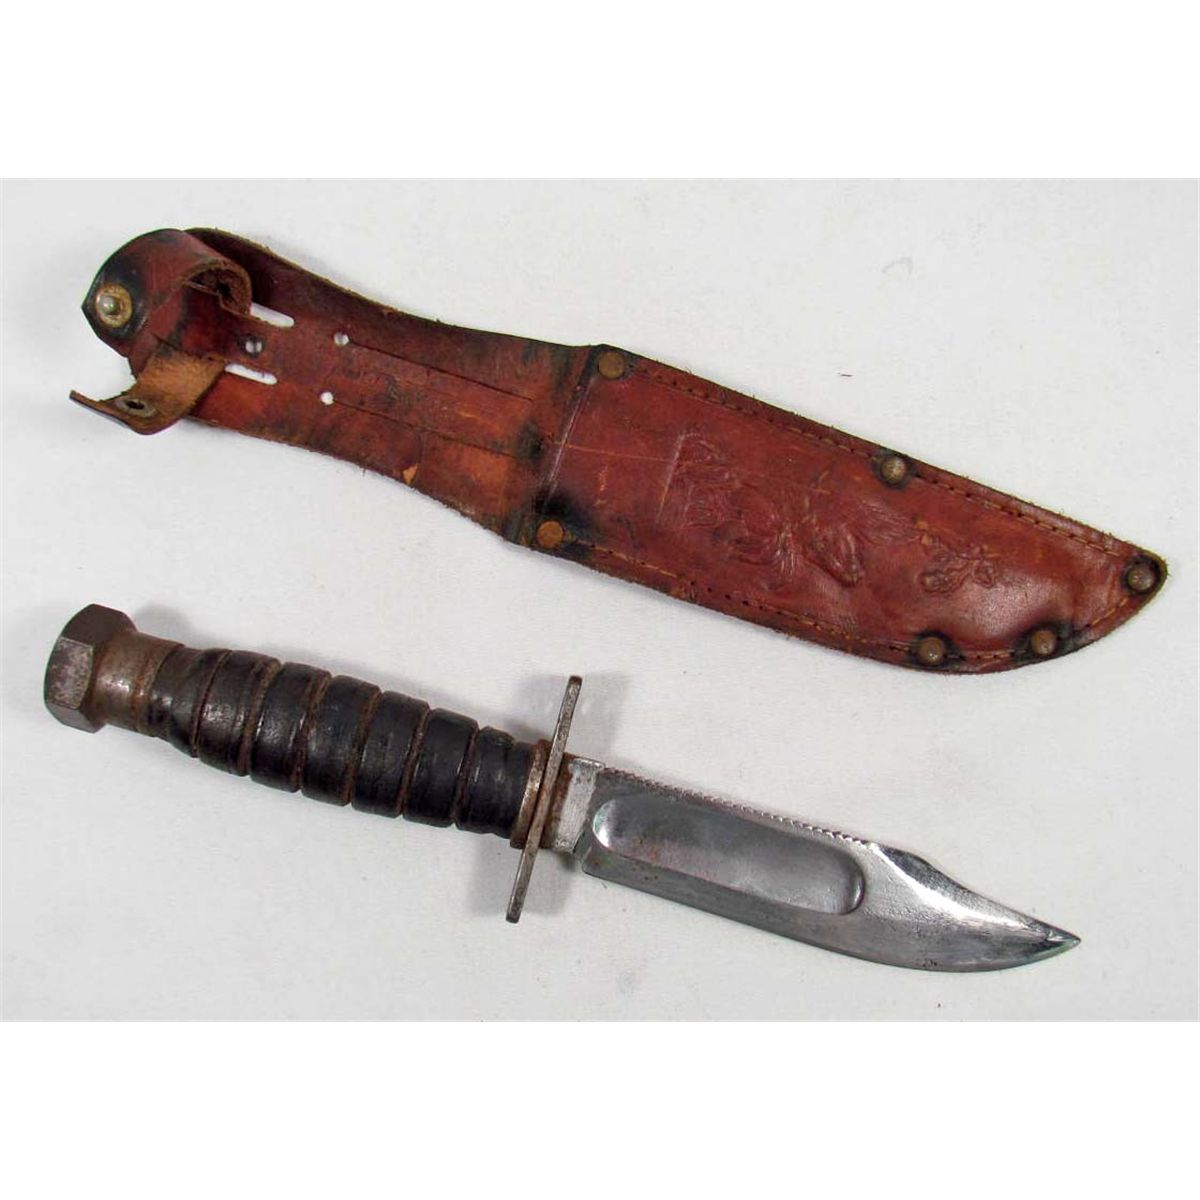 US ARMY MILITARY COMBAT SURVIVAL KNIFE W/ LEATHER SCABBARD